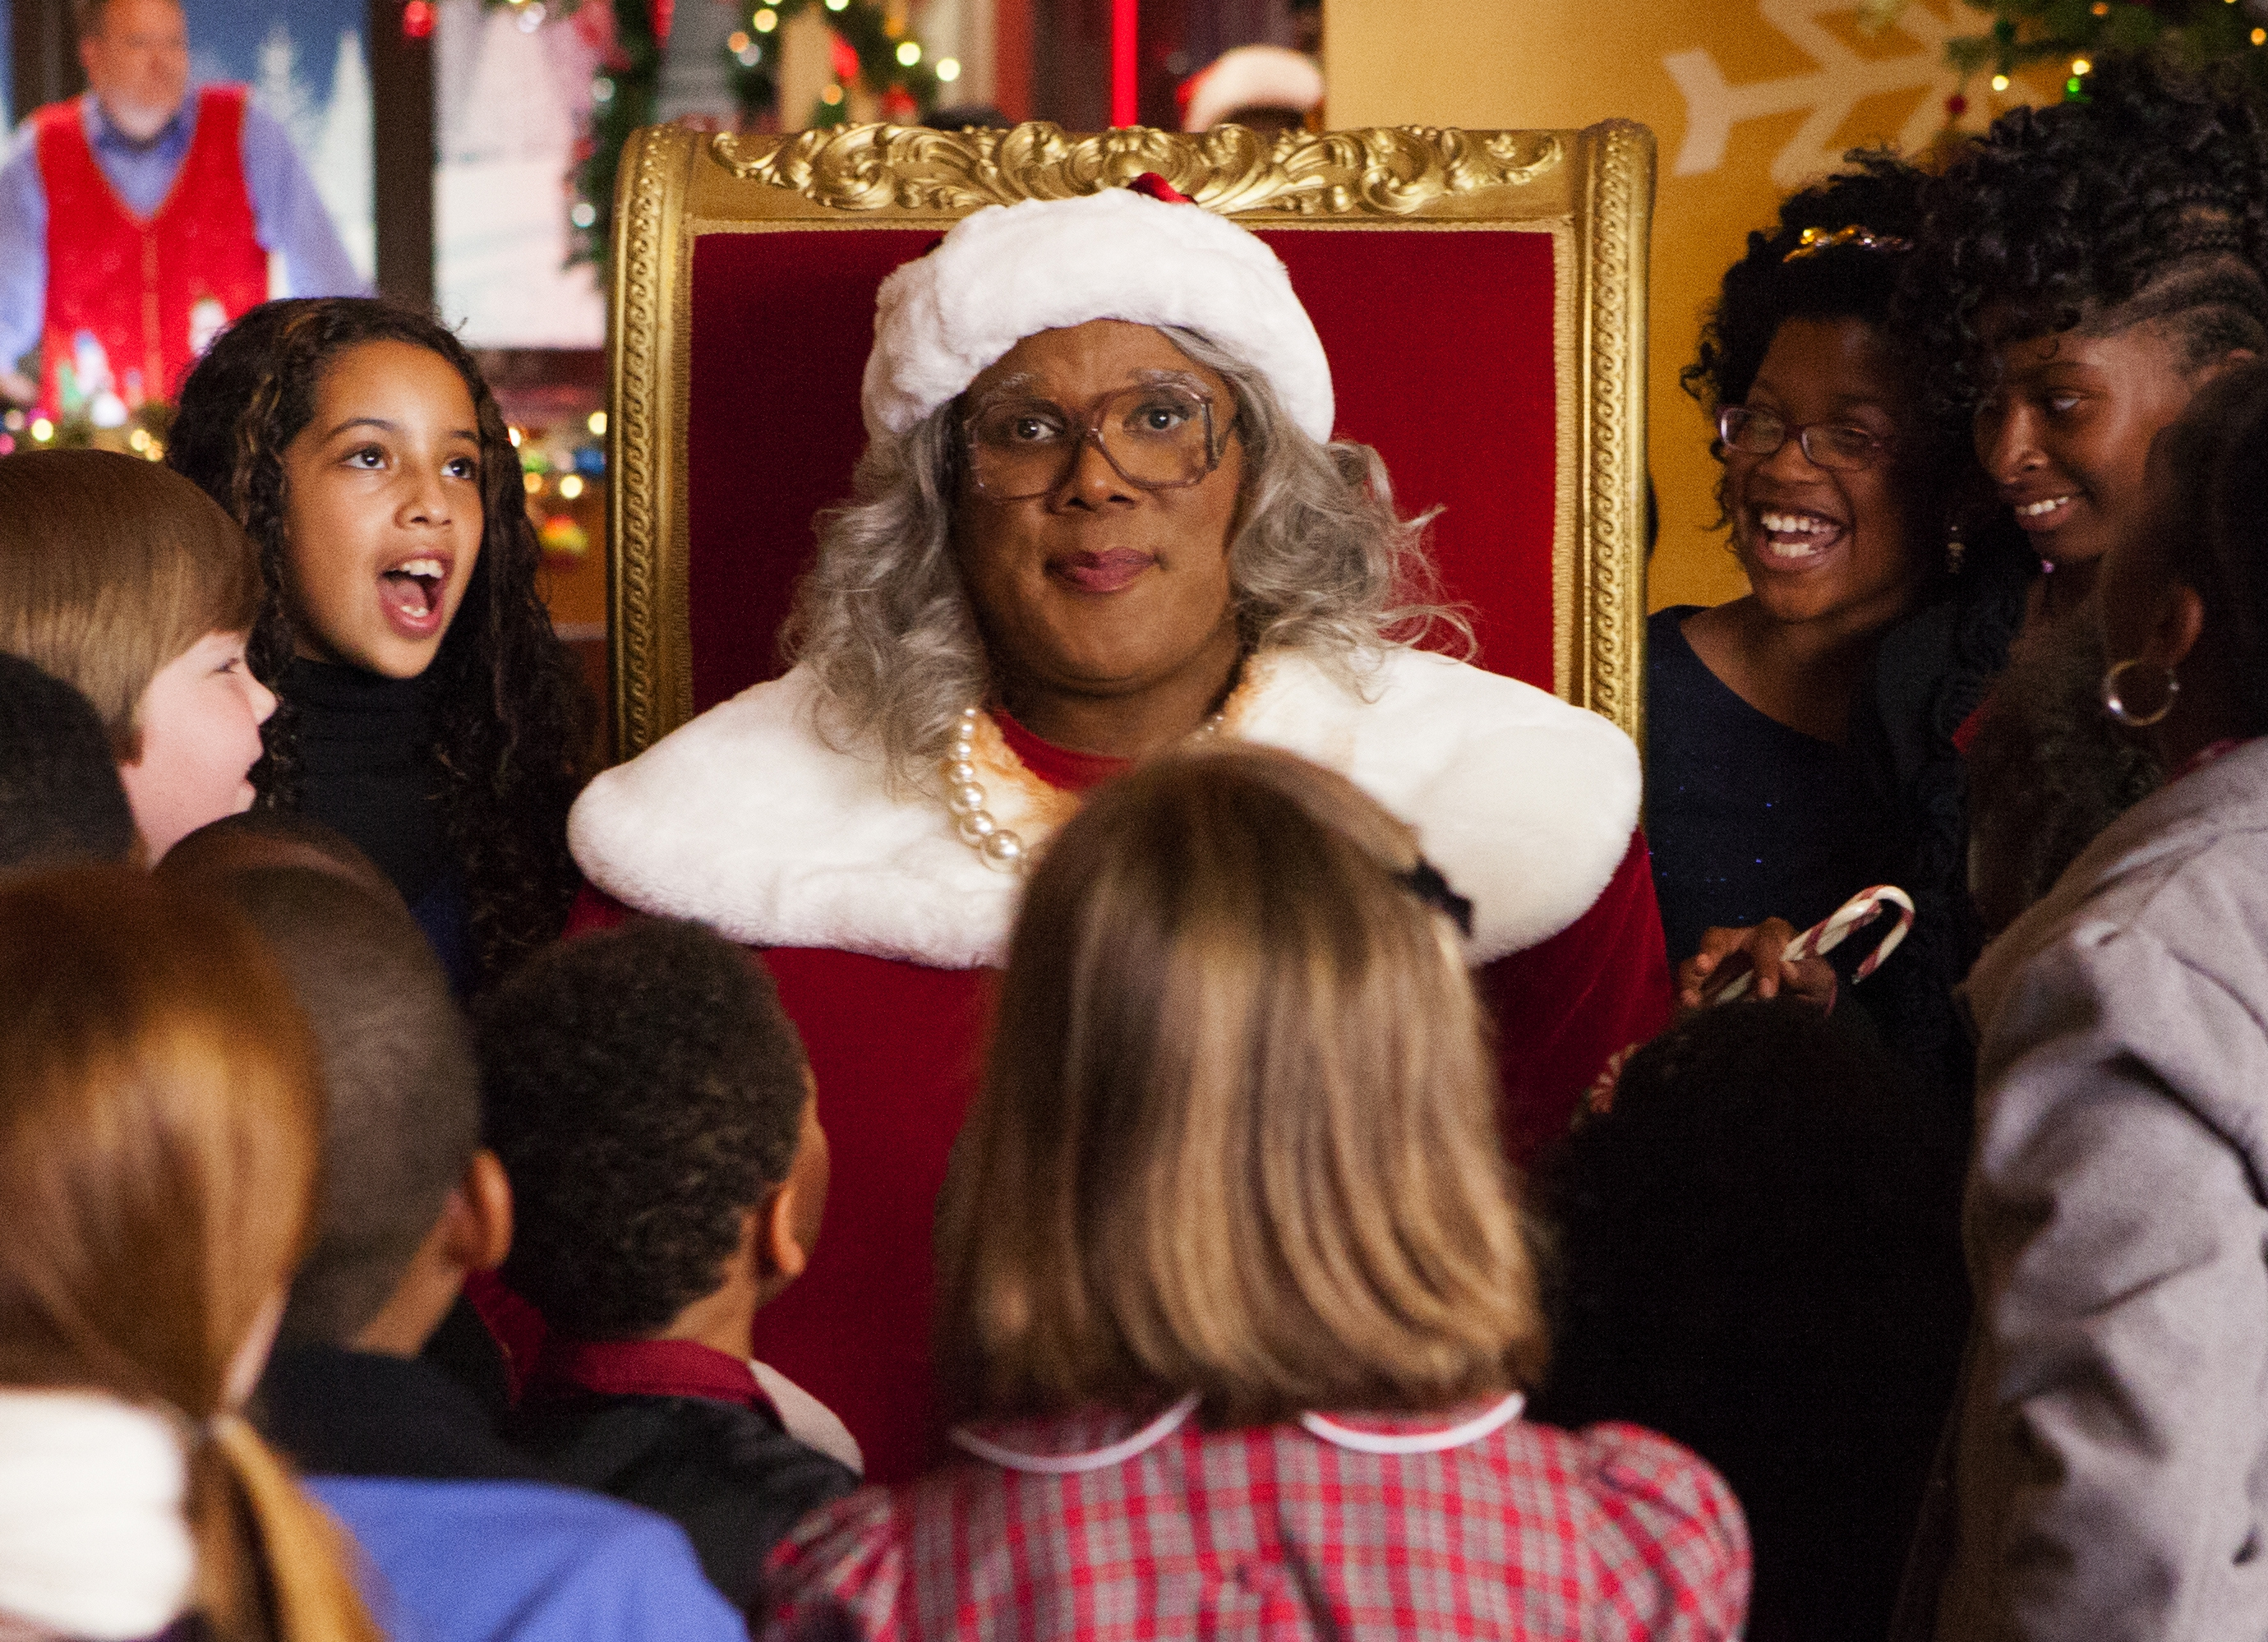 Black People Christmas Pictures.3 Christmas Movies Cap A Big Year For Black Cinema The